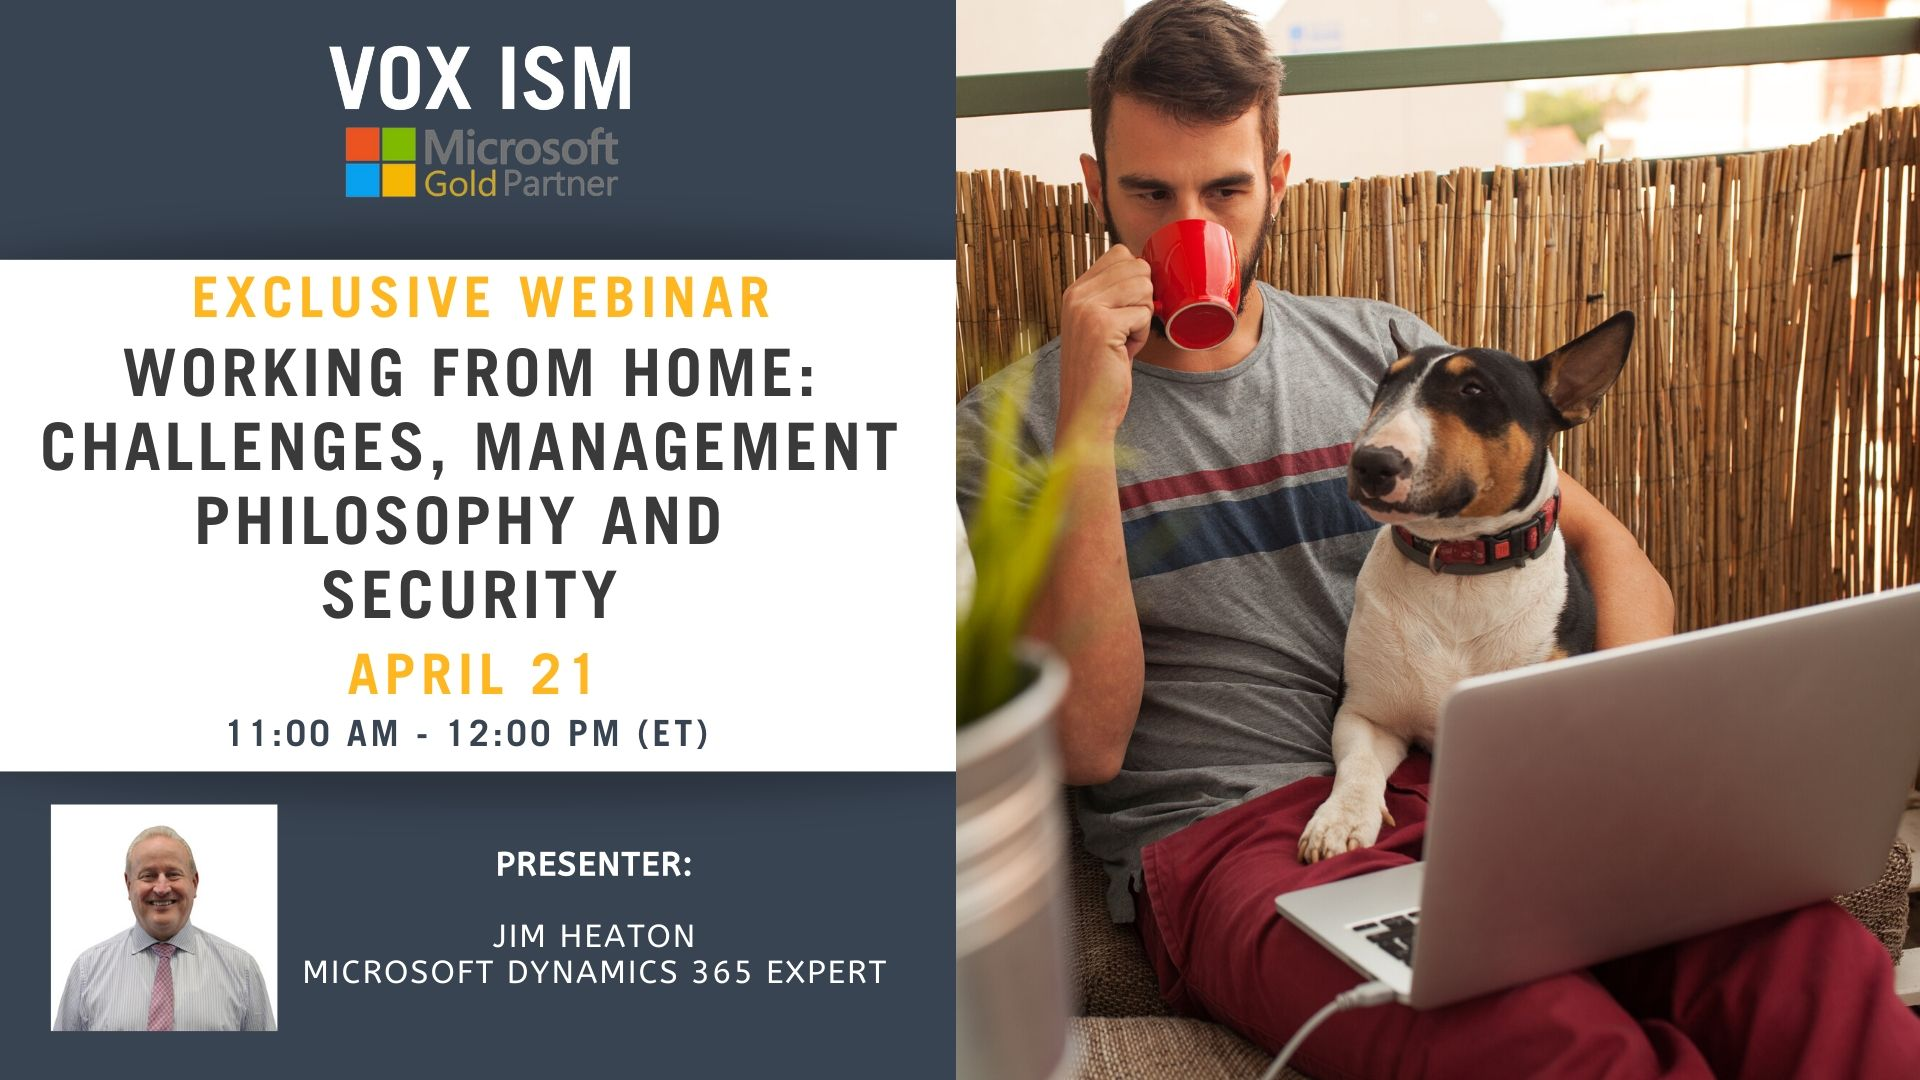 Working from Home: Challenges, Management Philosophy and Security - April 21 - Webinar_VOX ISM